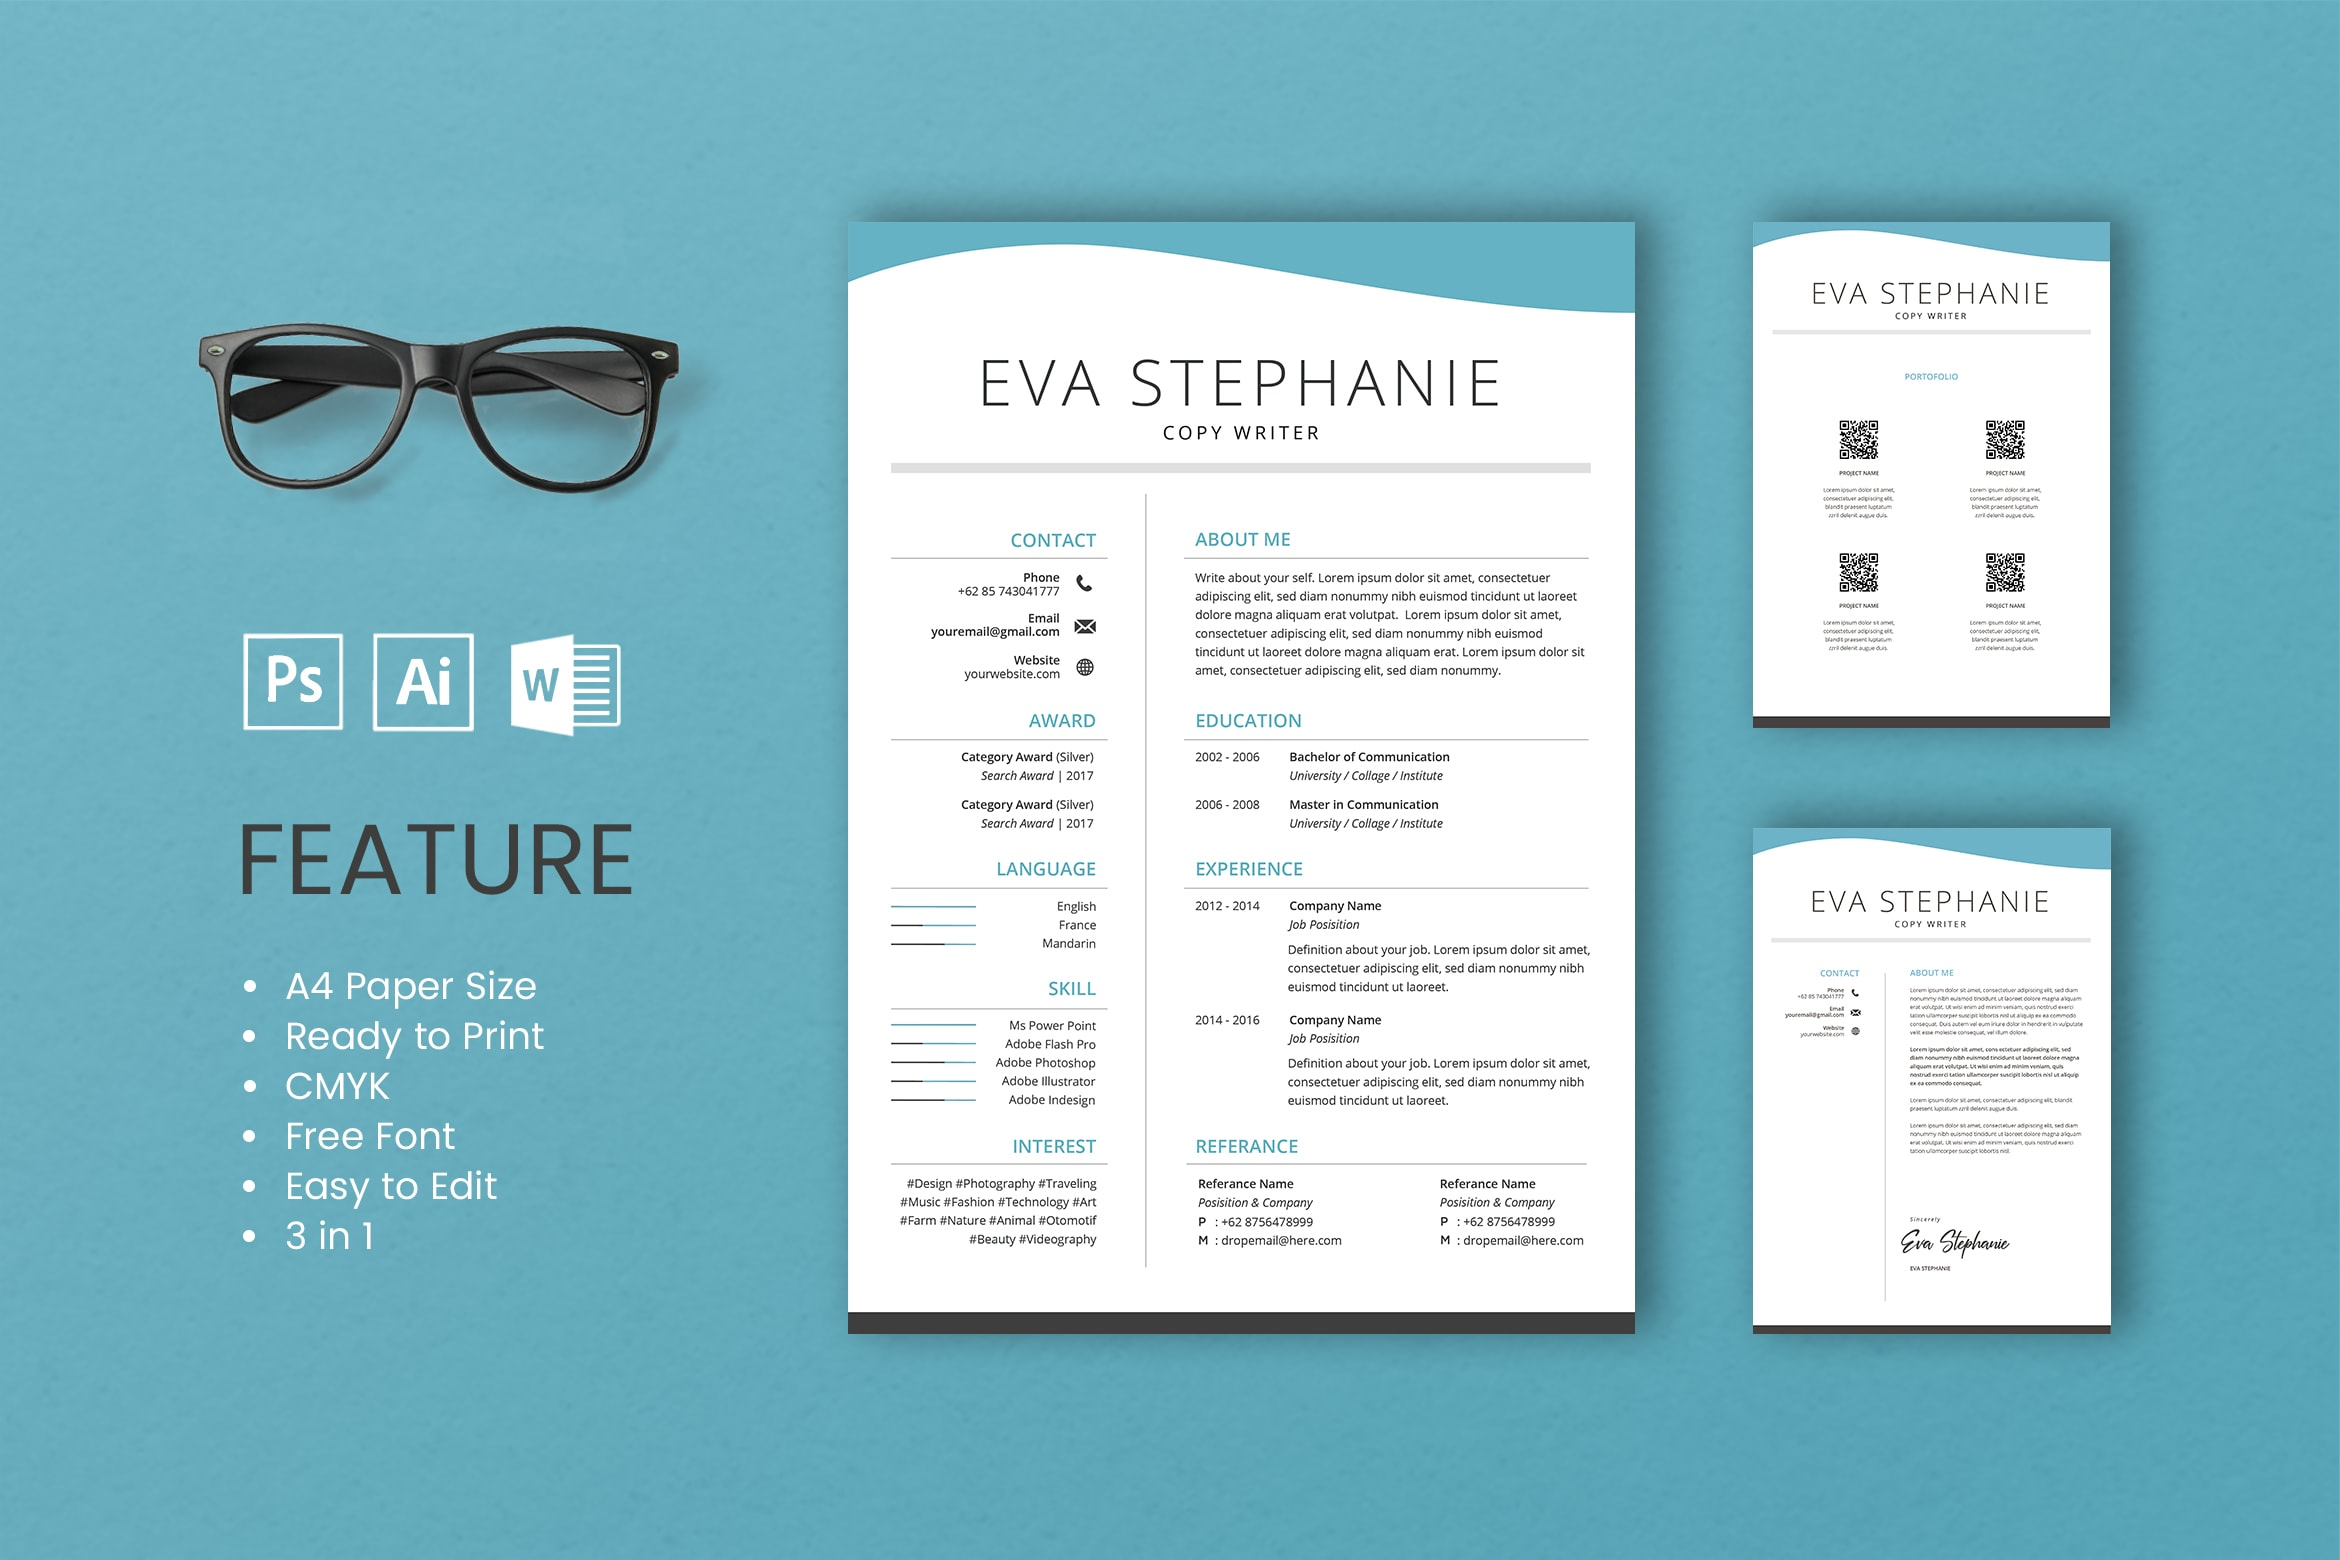 CV Resume - Copywriter Profile 2